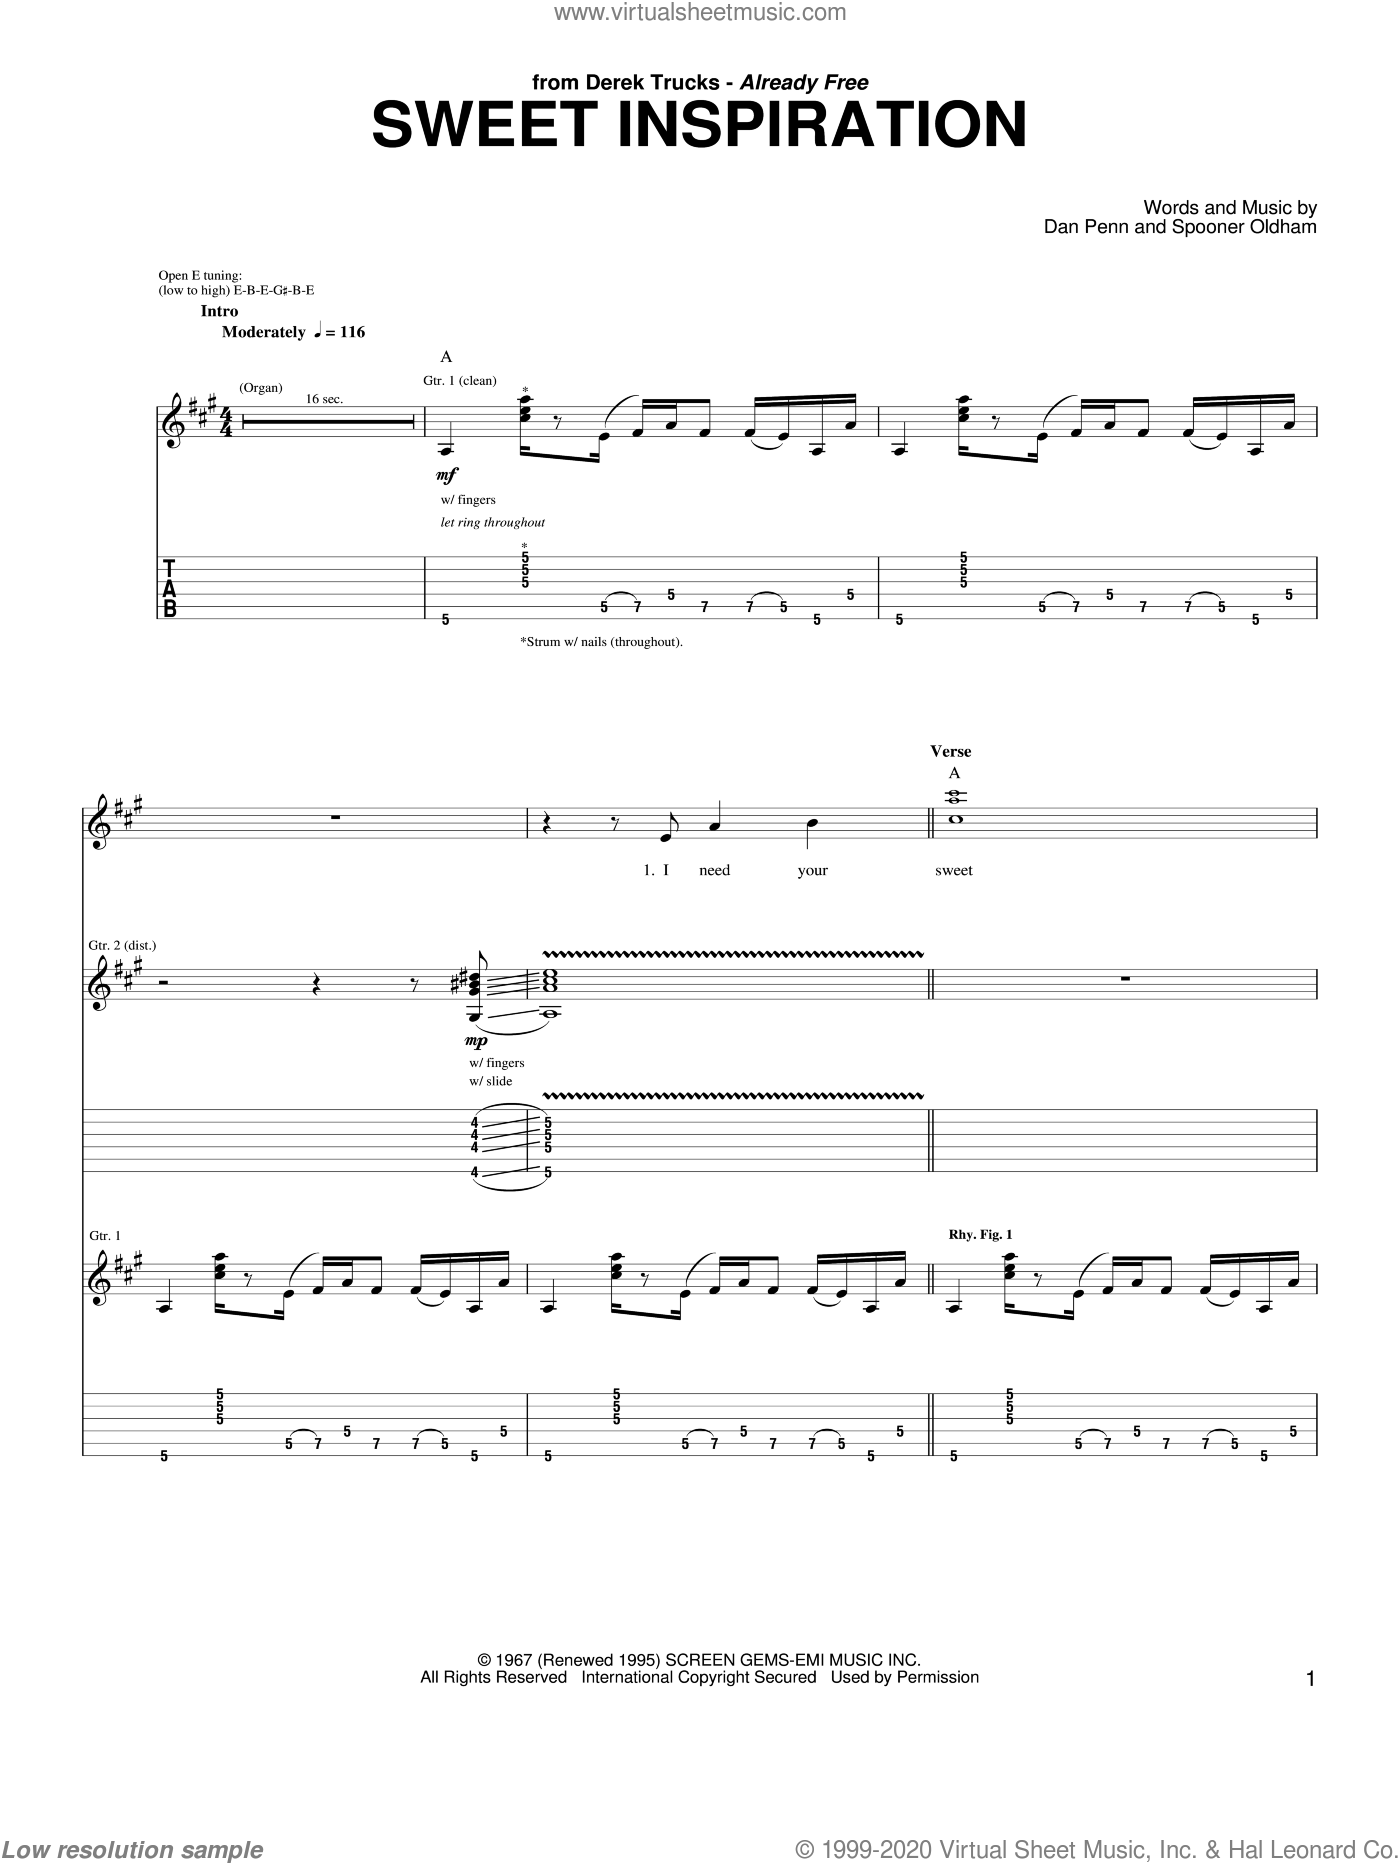 Sweet Inspiration sheet music for guitar (tablature) by Spooner Oldham, Rita Coolidge, The Derek Trucks Band and Dan Penn